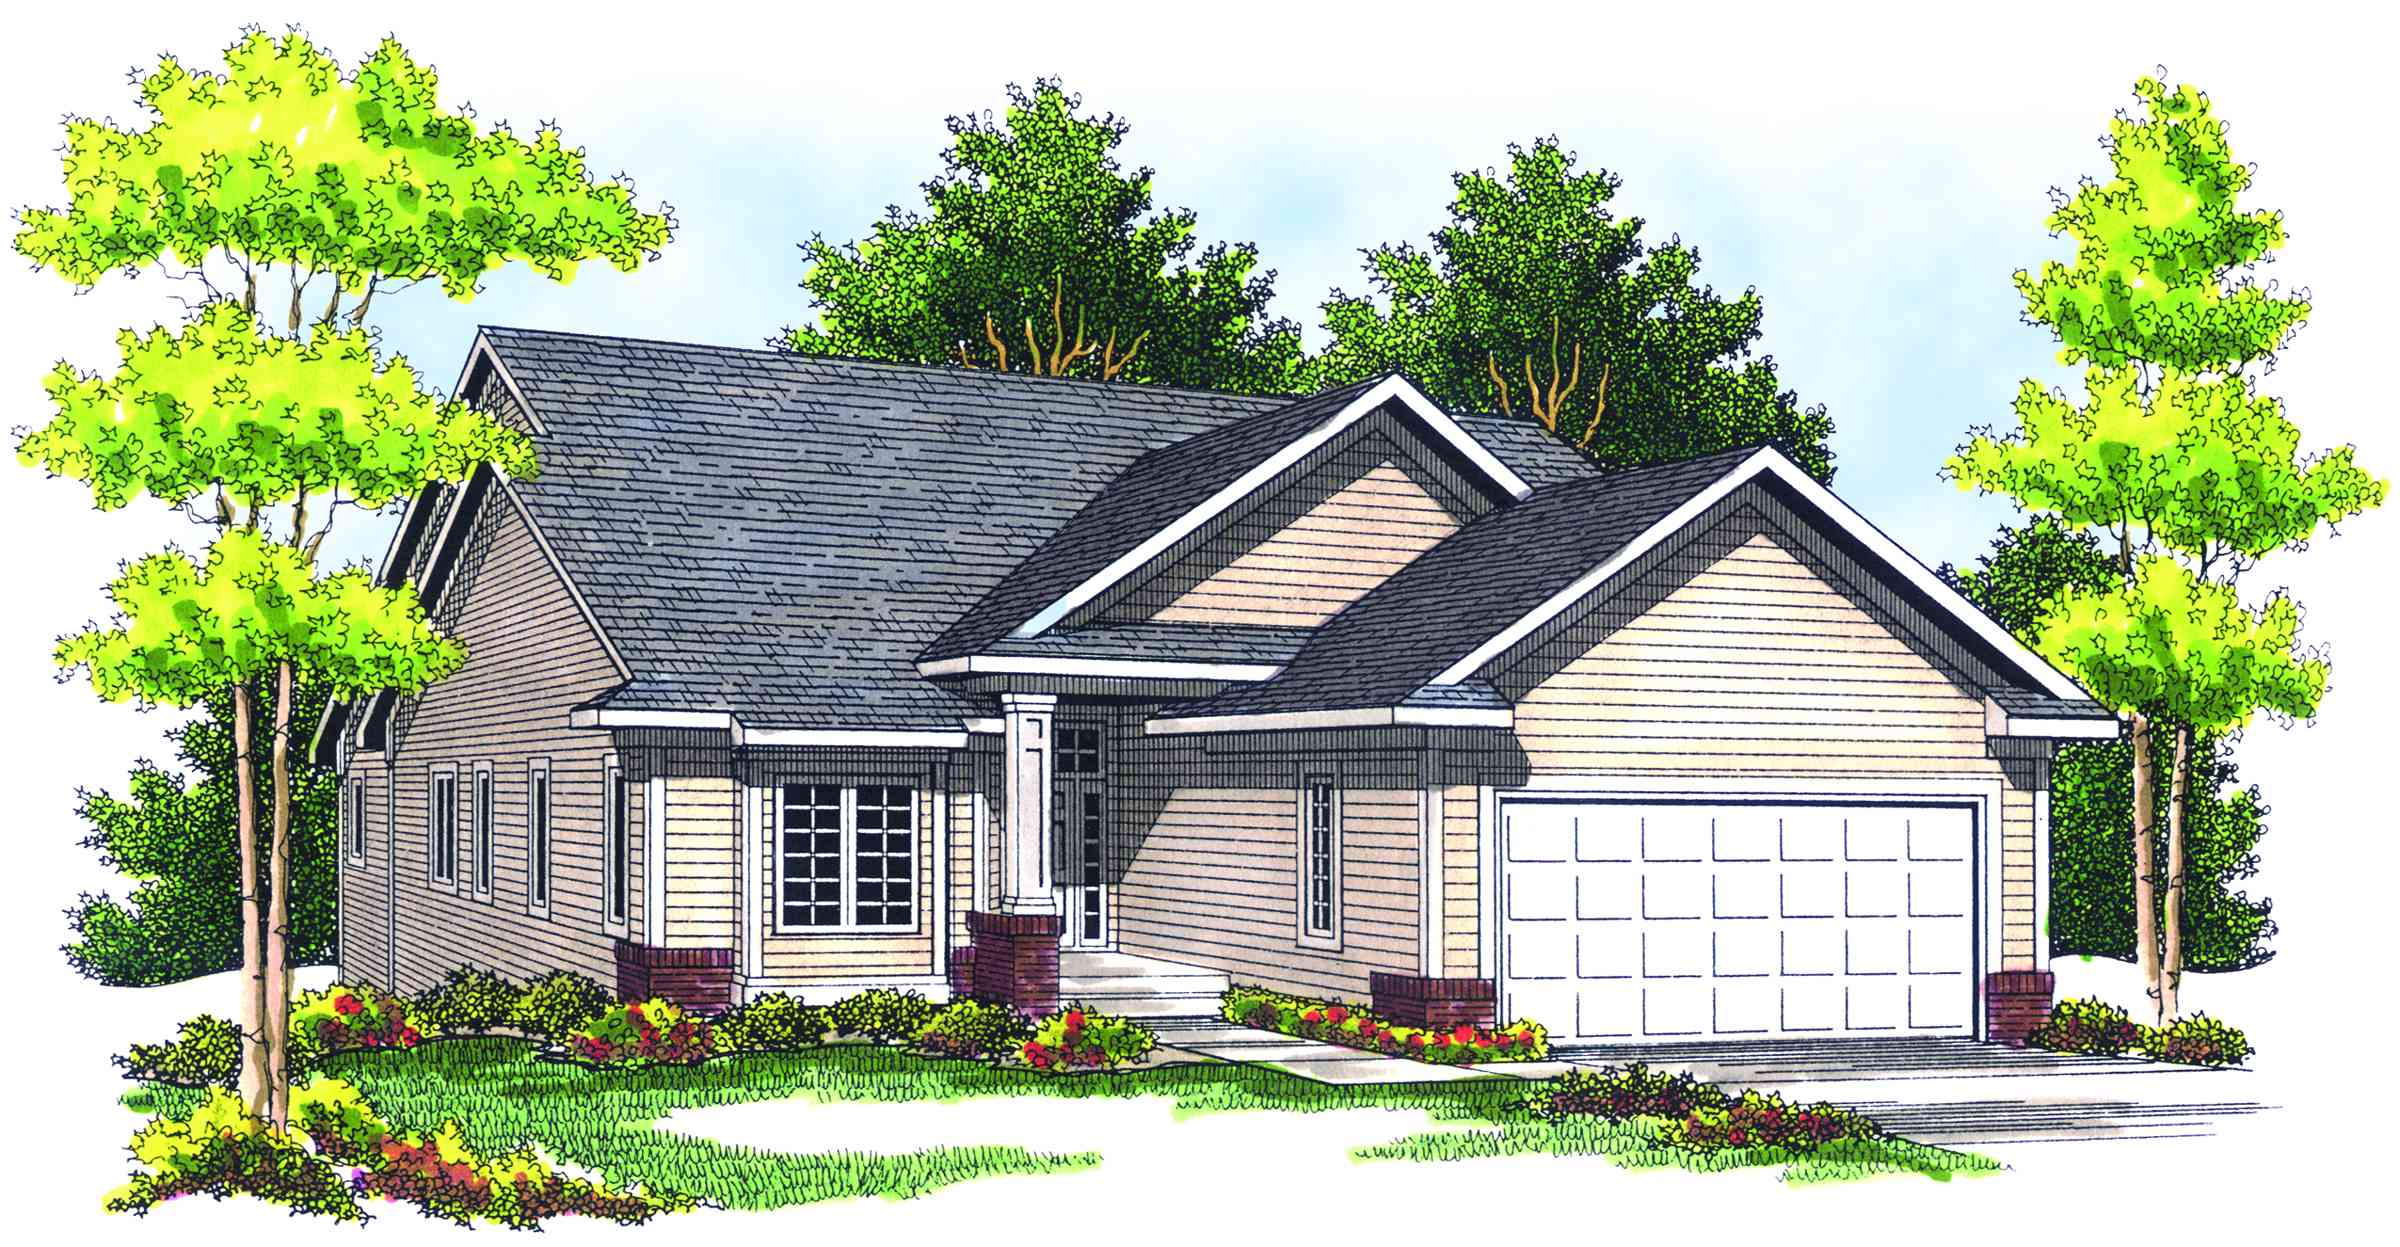 Affordable ranch home plan 89198ah 1st floor master for Affordable ranch home plans